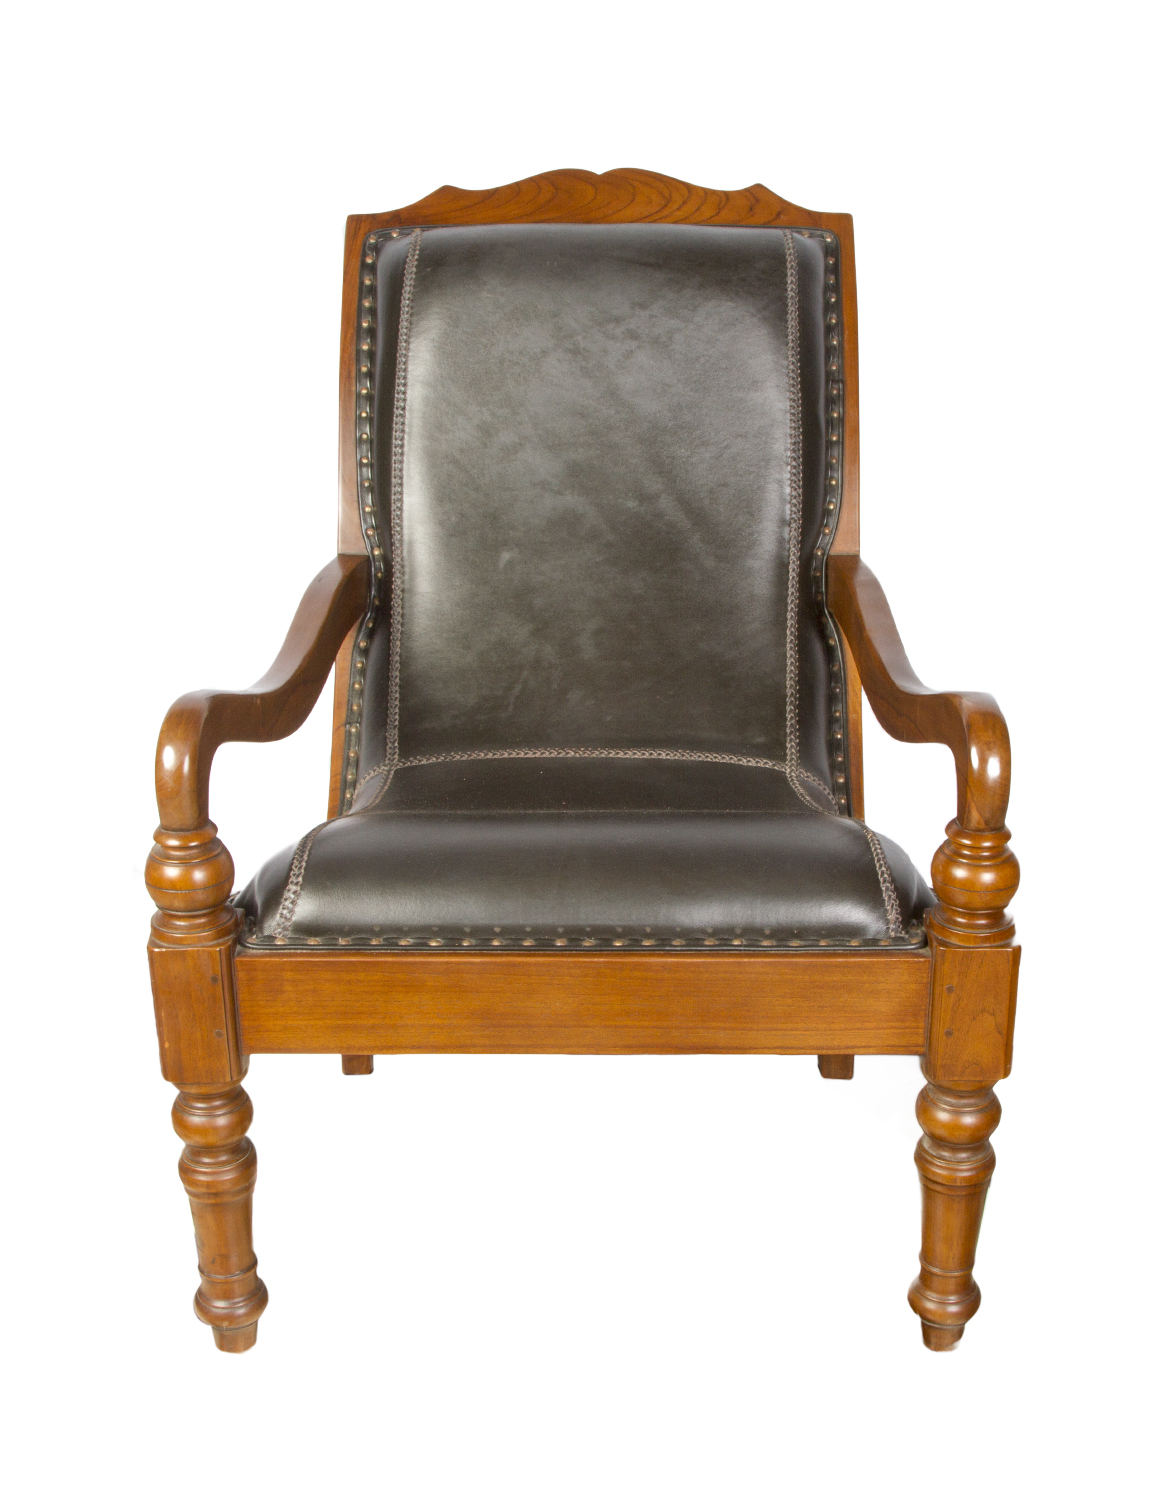 Plantation chair in wood and leather